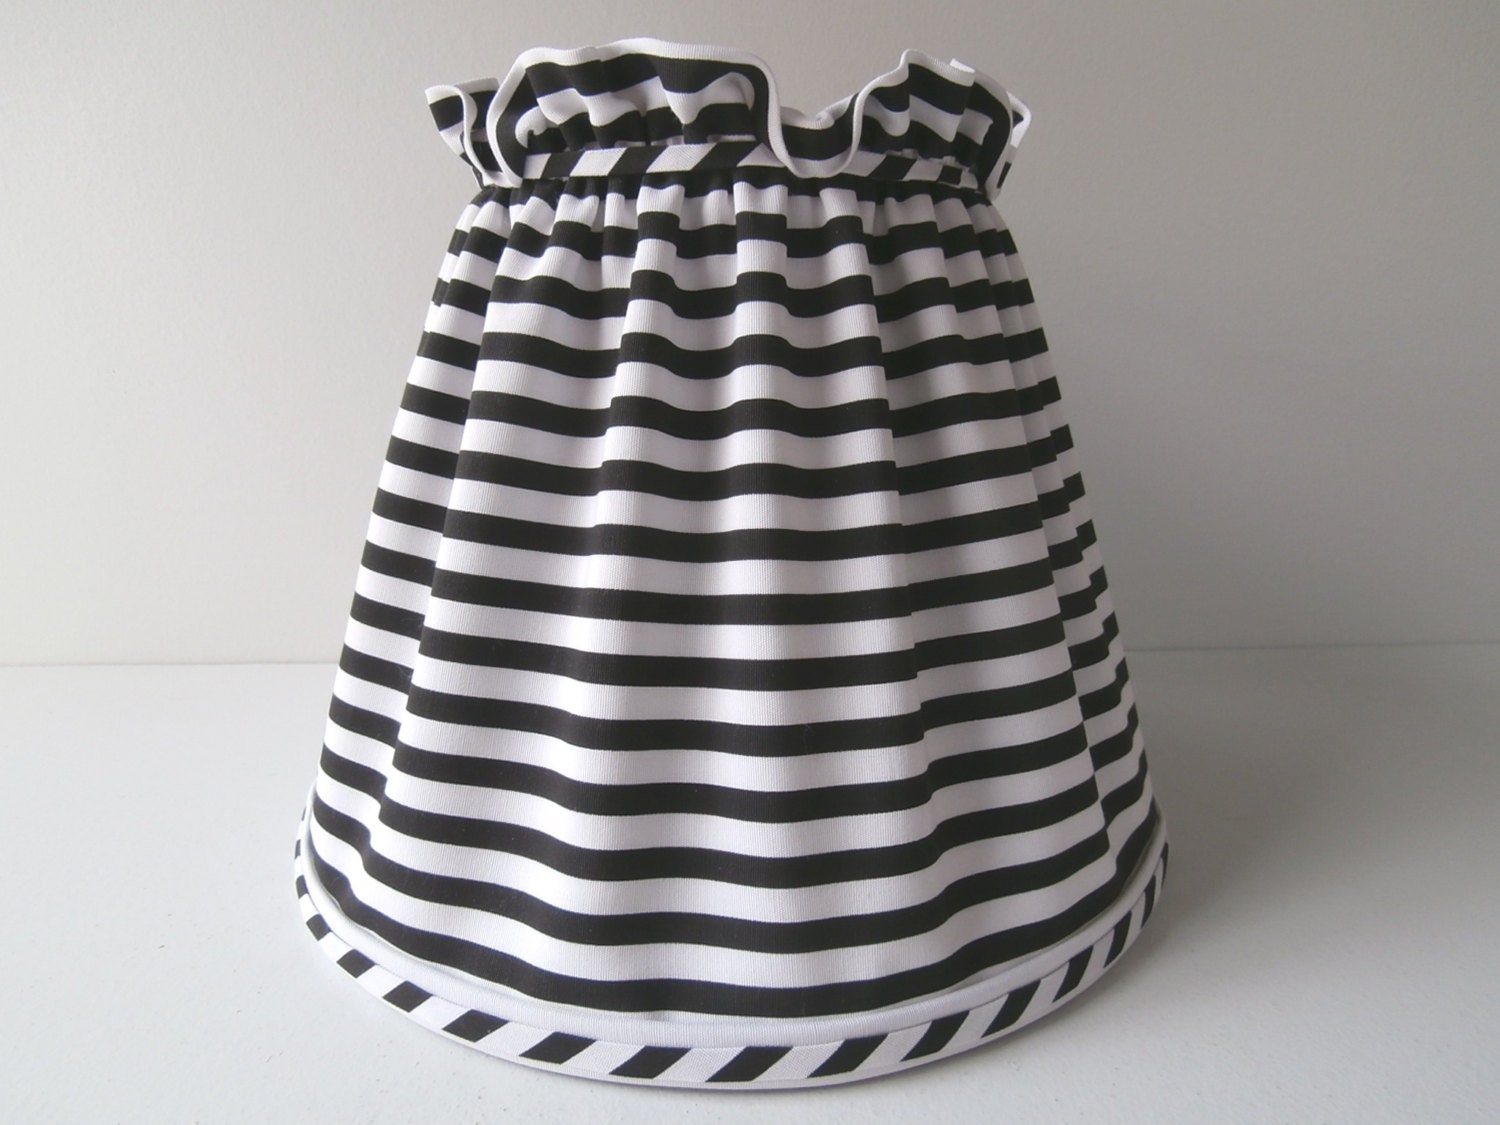 Chandelier Lamp Shade in Black and White Gingham Check with   Black And White Lamp Shades